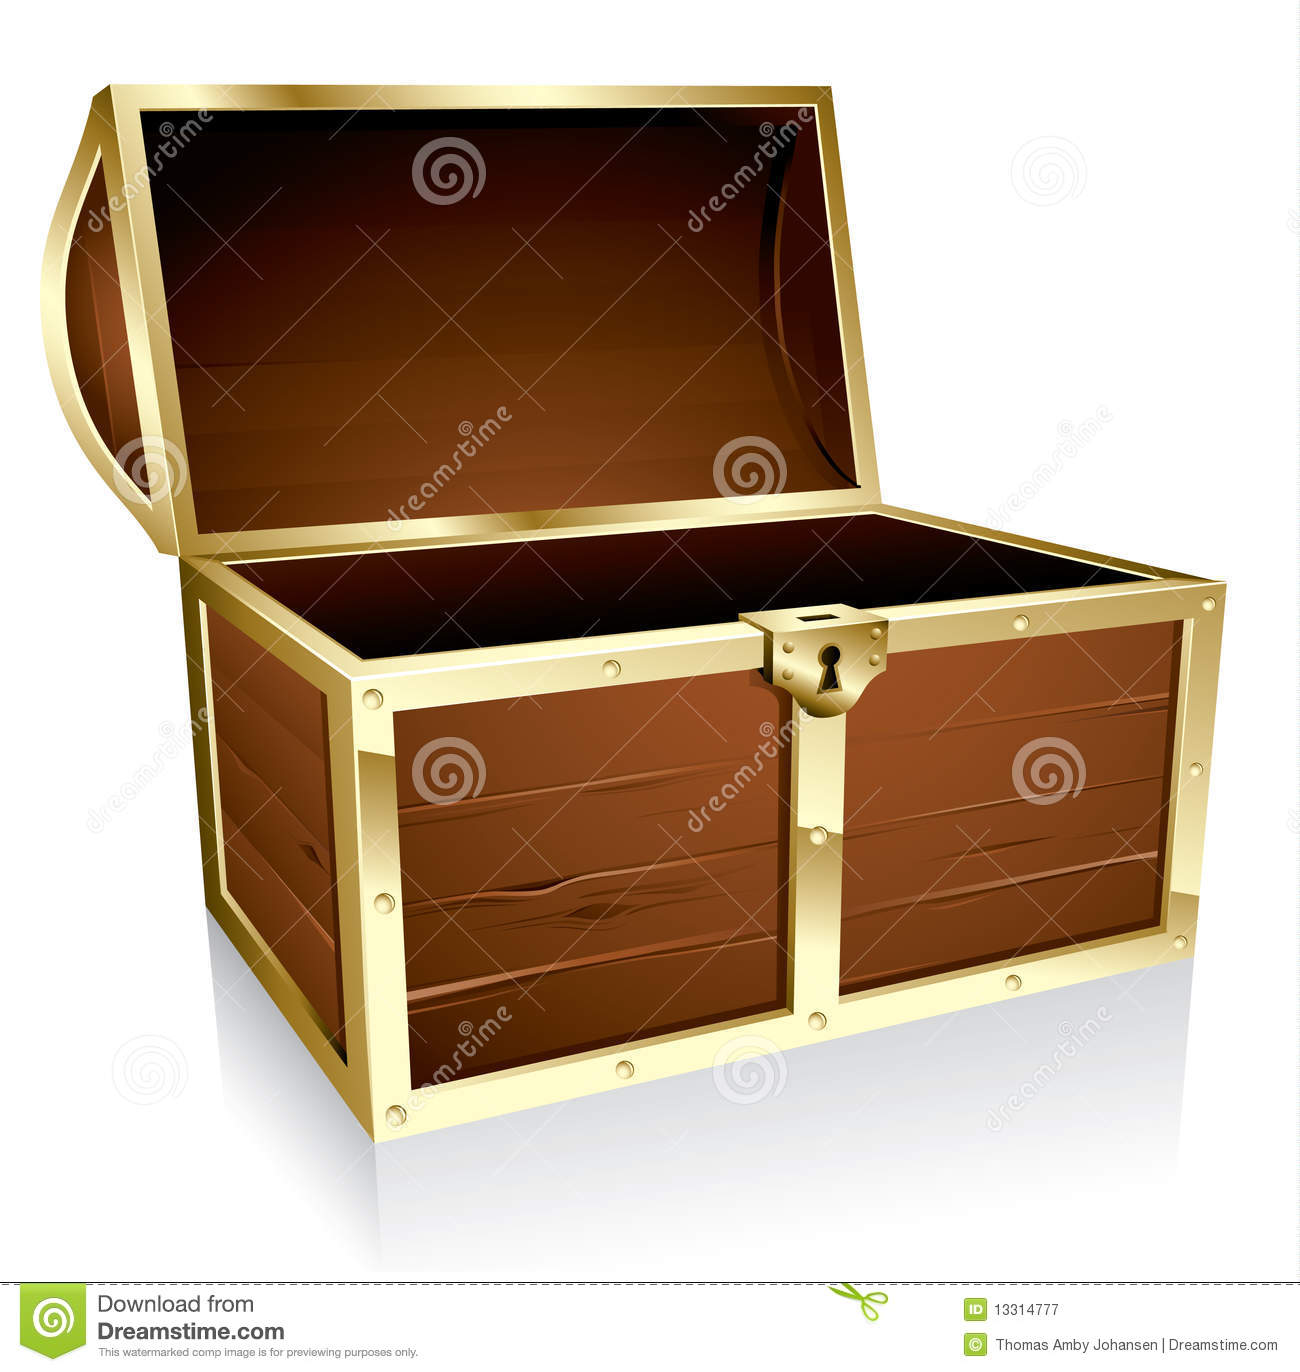 Empty treasure chest stock vector. Image of closed ...